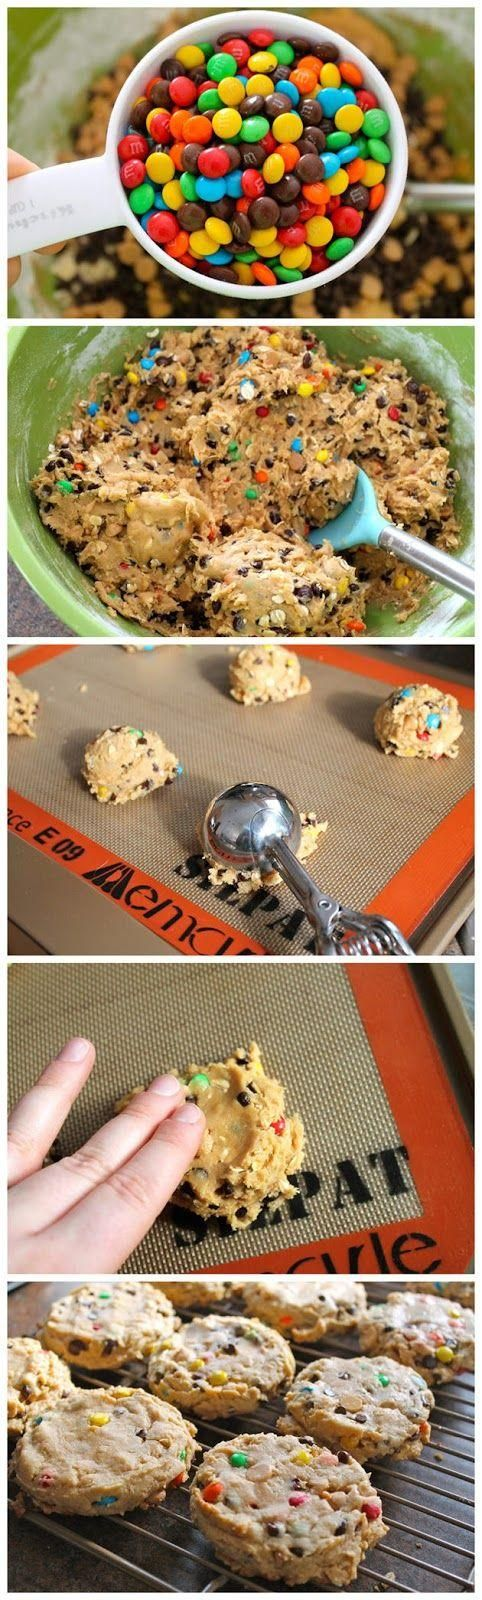 Soft Monster Cookies 1/2 cup or 1 stick of butter (at room temperature) 1/2 cup brown sugar 1/4 cup white sugar 3/4 cup creamy peanut butter 1 egg localoffersIcon 1 teaspoon vanilla 1/2 teaspoon baking soda 1 1/4 cups all purpose flour 1/2 cup quick cooking oats 3/4 cup m 1/4 cup chocolate chips 1/4 peanut butter chips